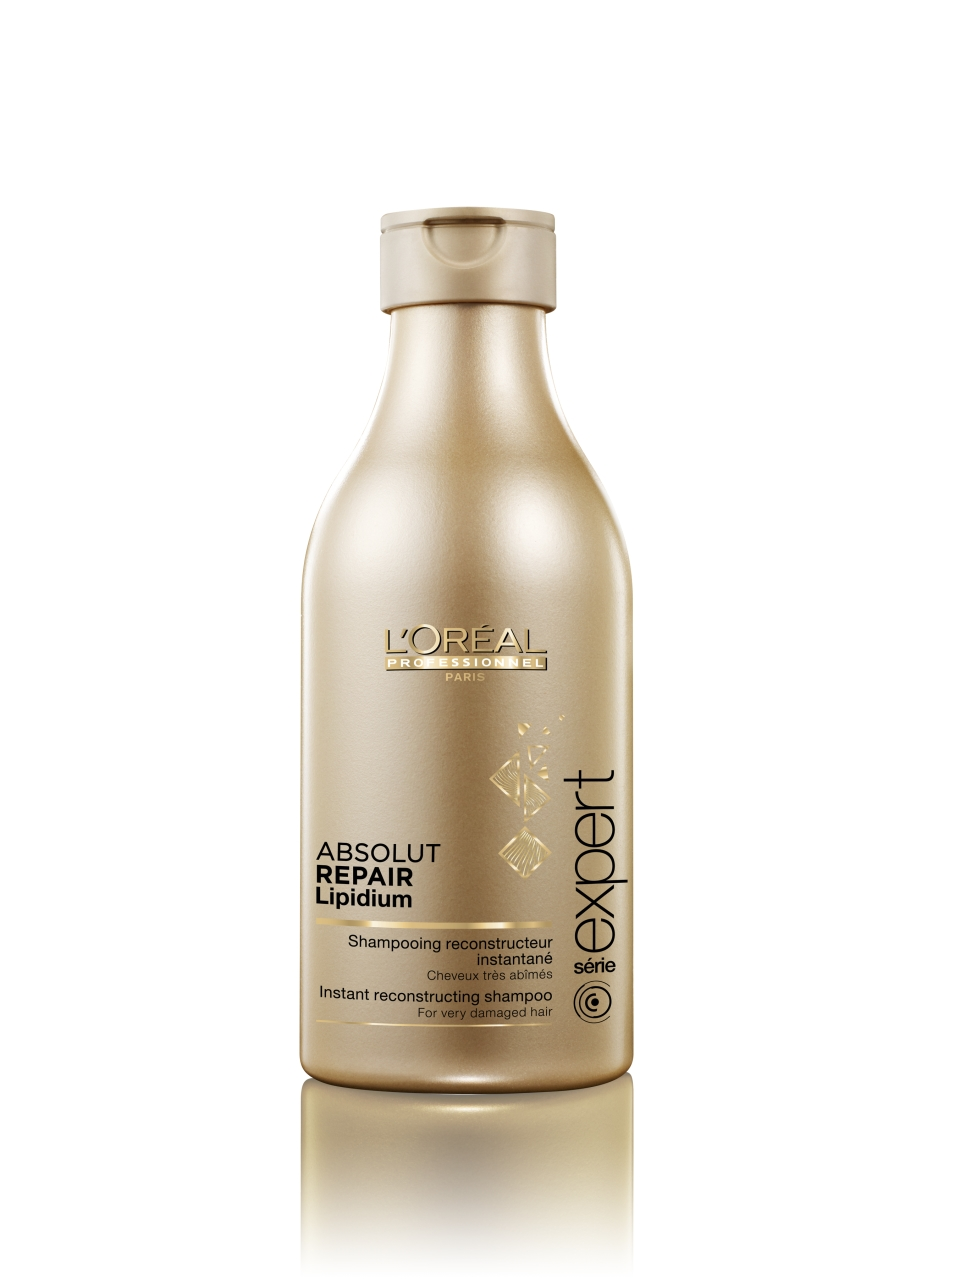 L'Oréal Professionnel Absolut Repair Lipidium Shampoo 250ml l or al professionnel   περιποιηση   ξηρά εξασθενημένα μαλλιά   l oreal professi